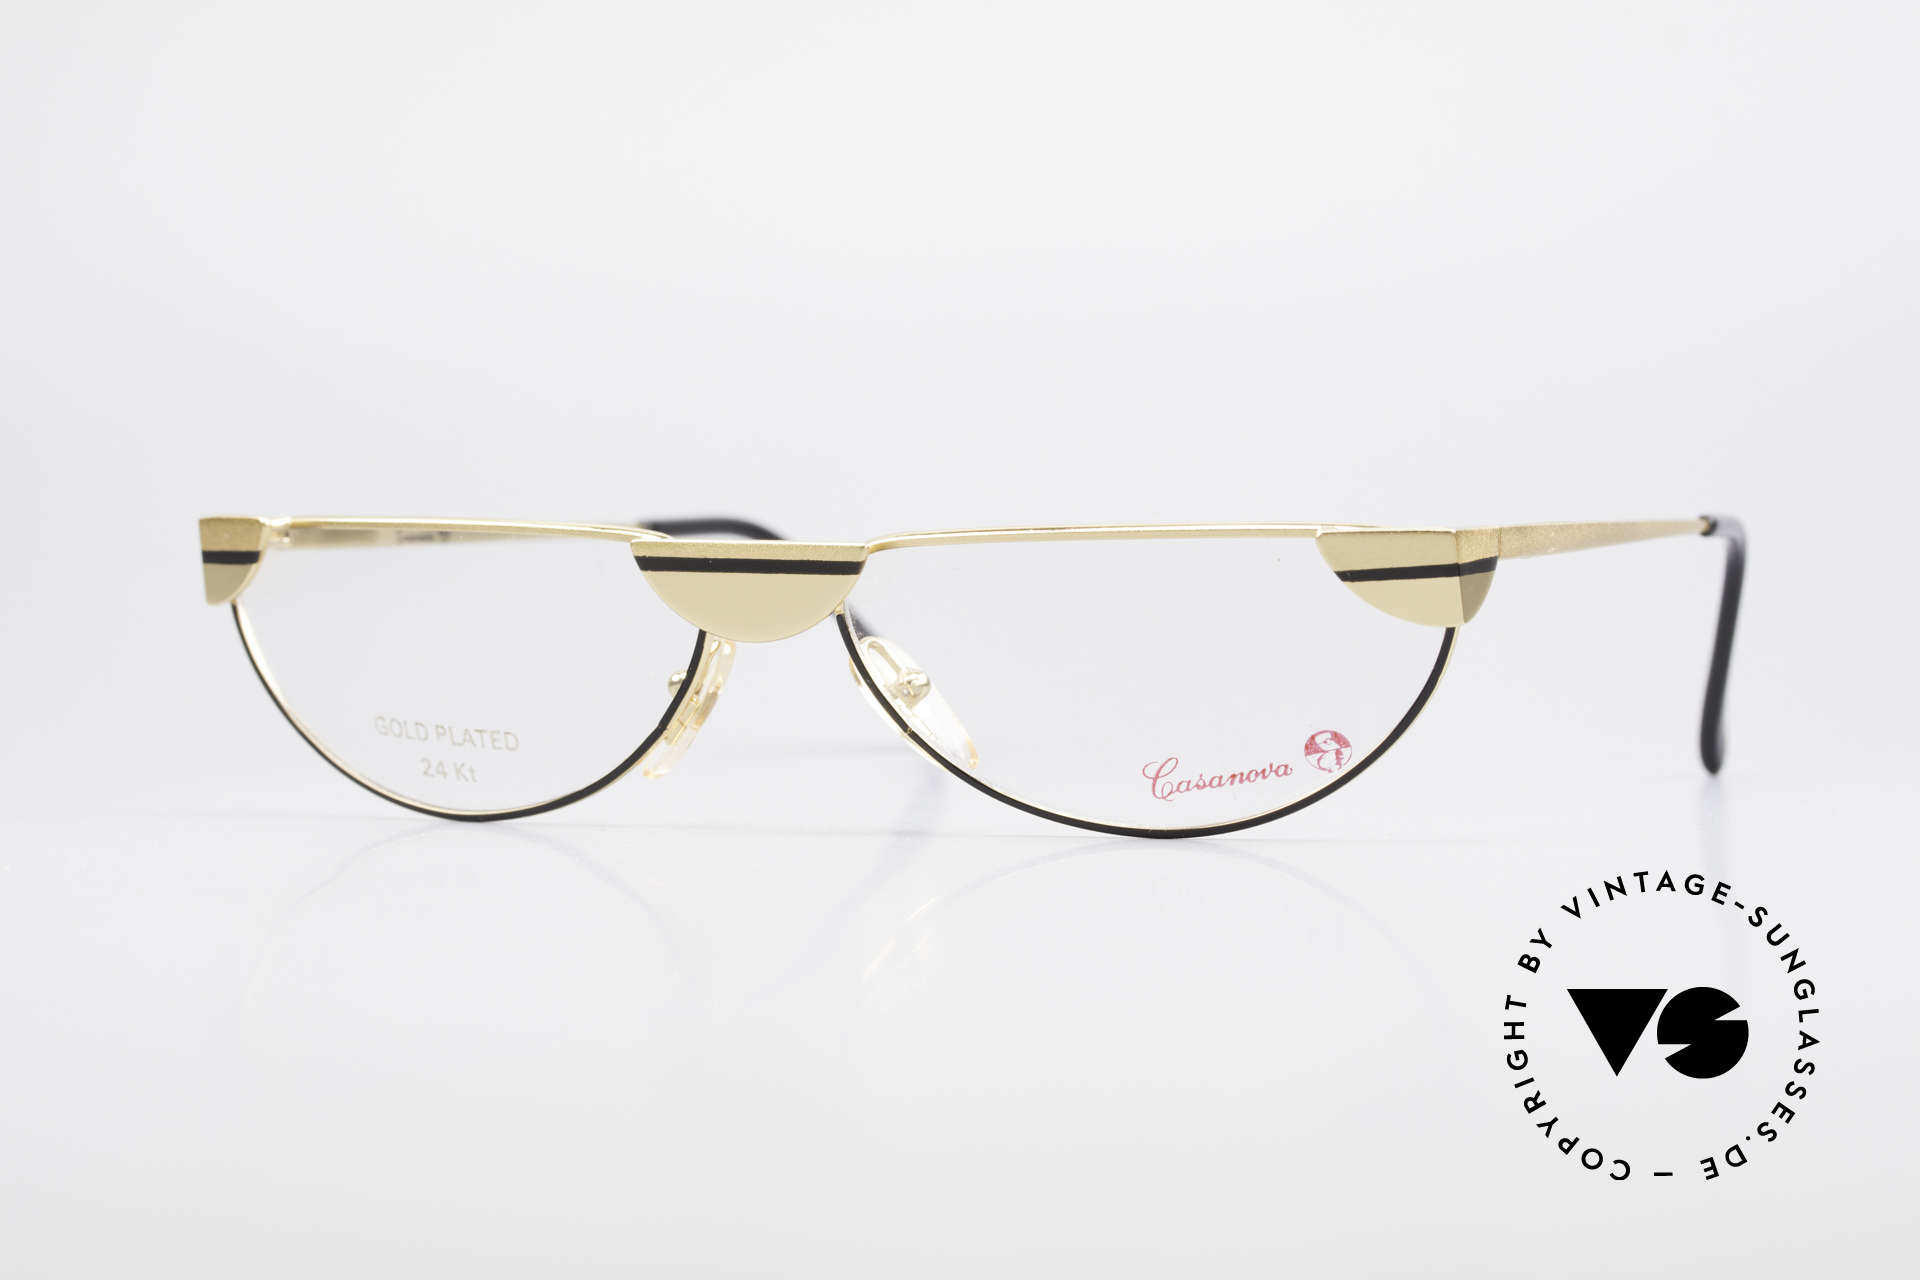 Casanova NM5 Gold Plated Reading Glasses, glamorous Casanova reading glasses from around 1985, Made for Men and Women